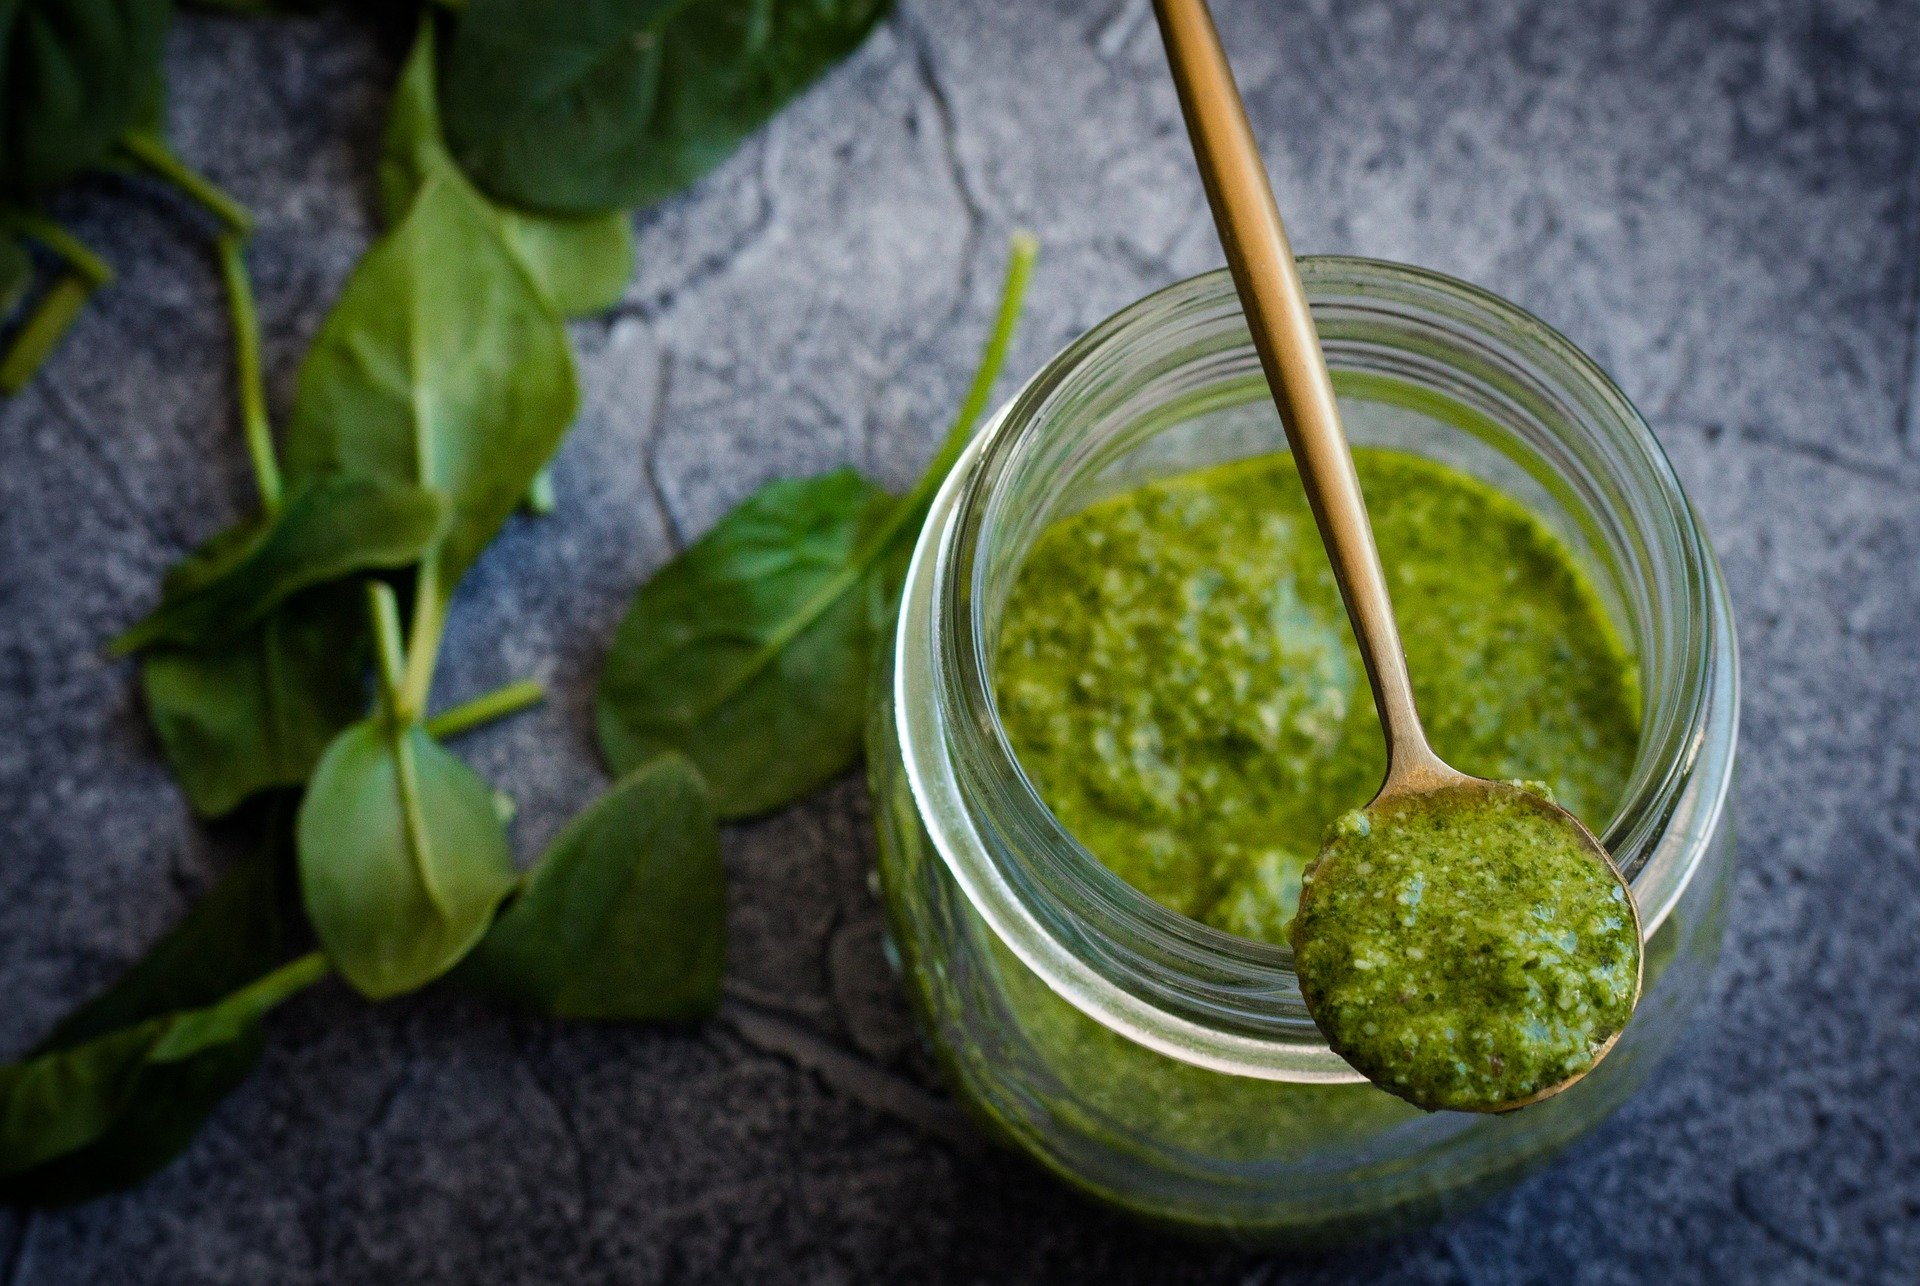 How To Make The Best Pesto Sauce